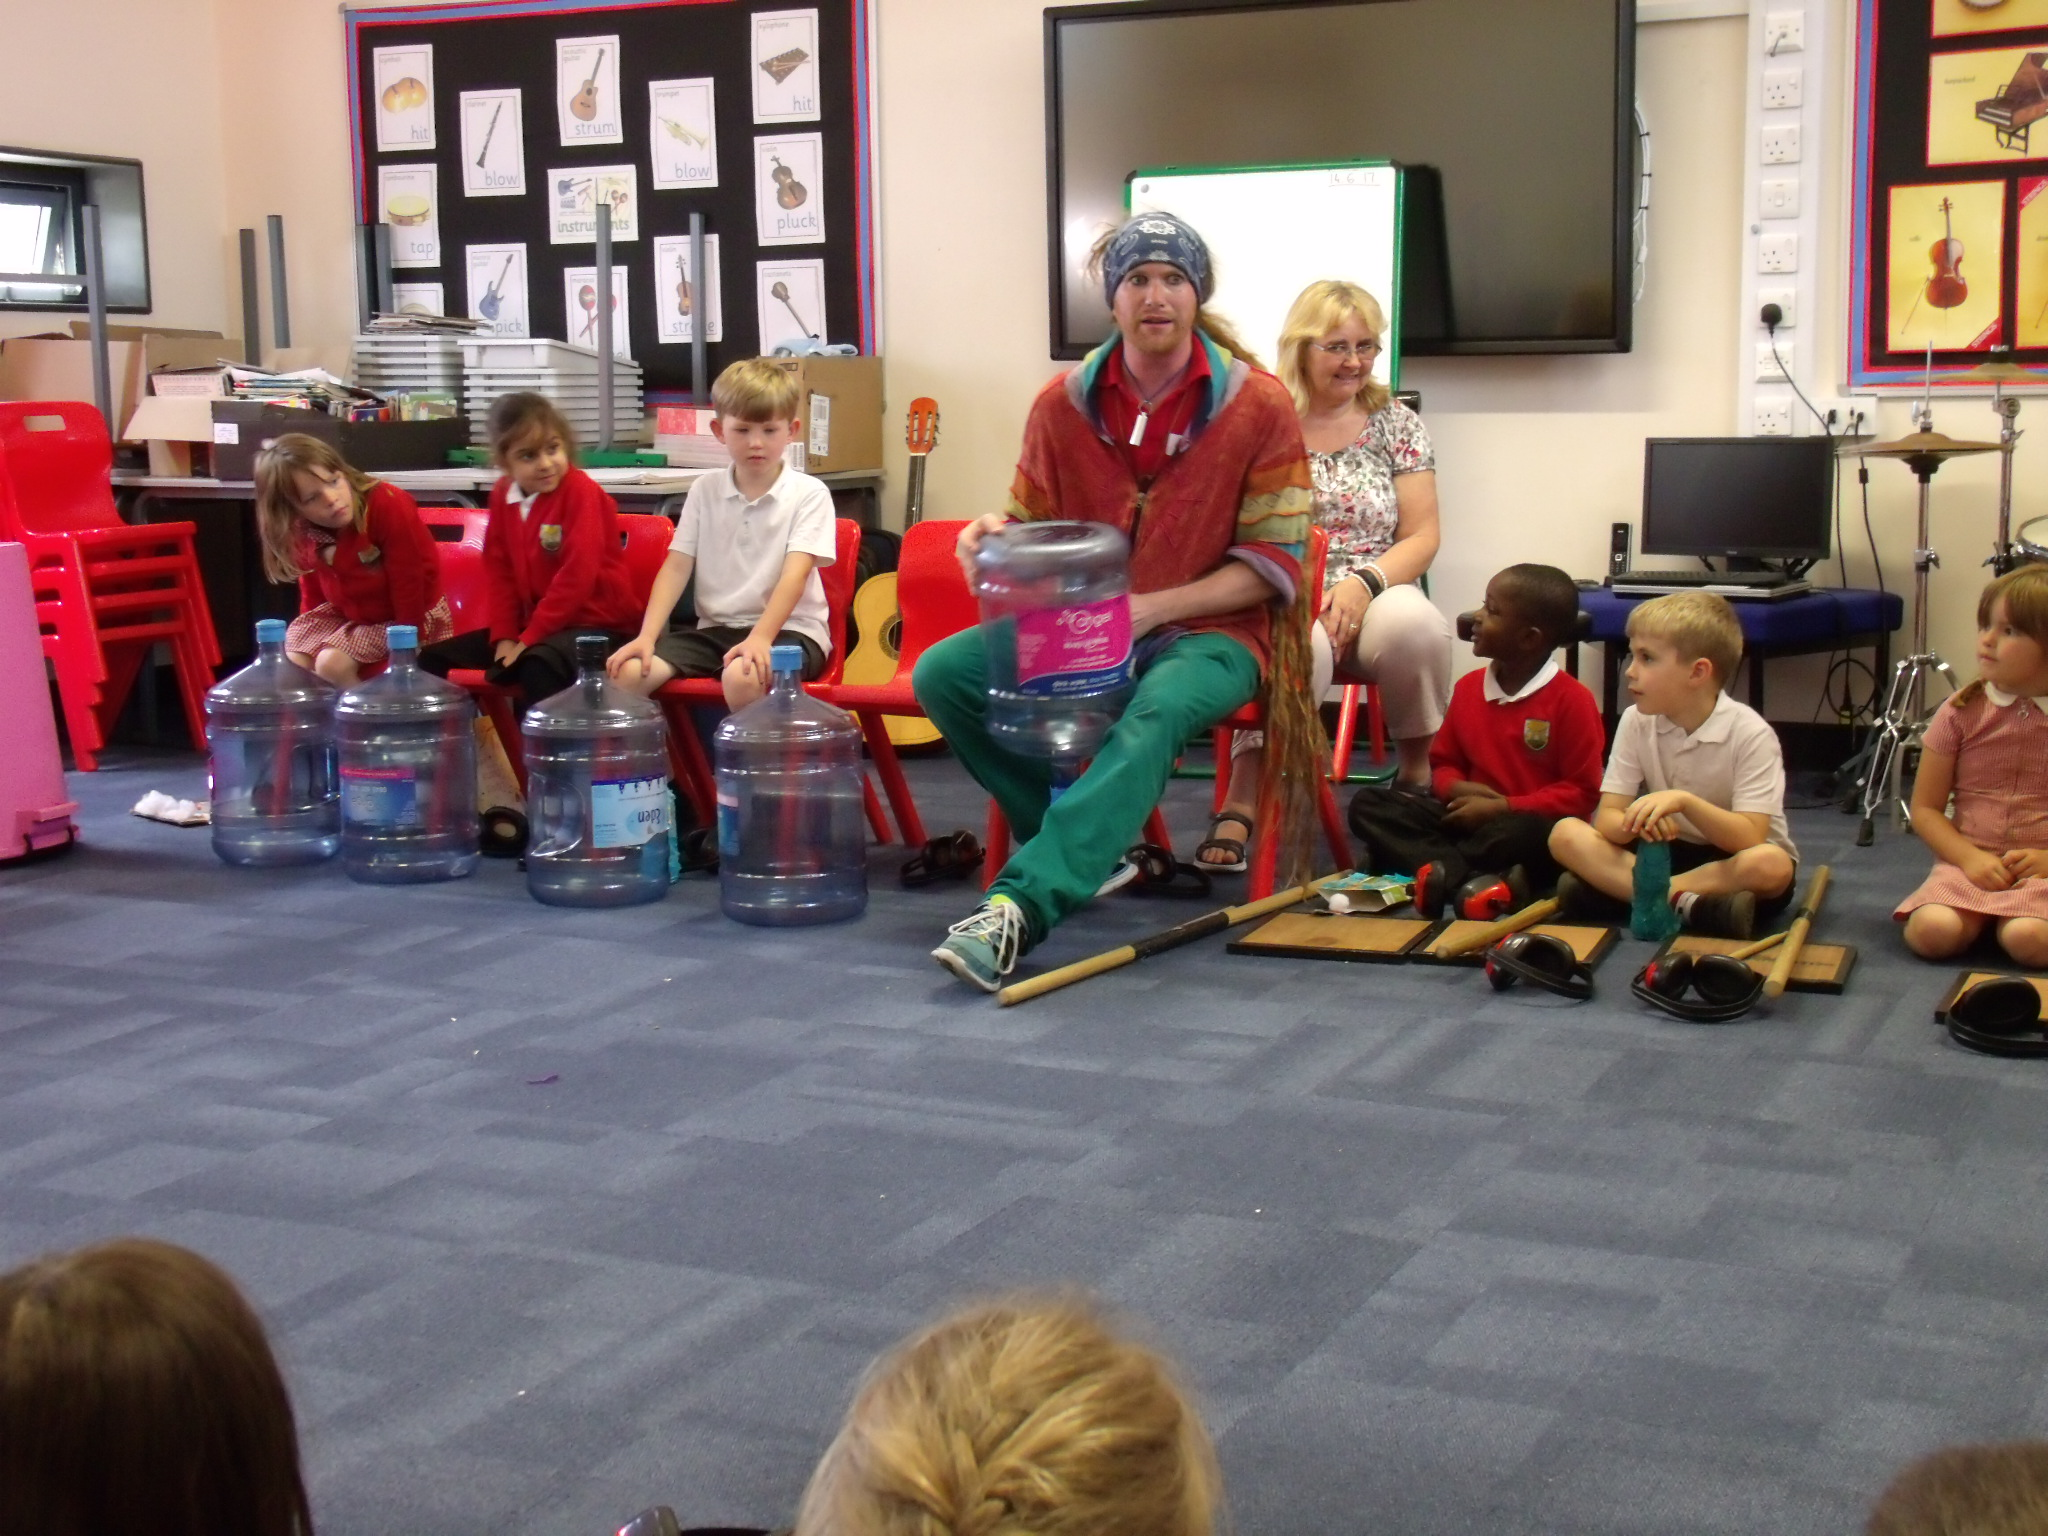 Teacher demonstrating how to play musical instruments made out of bottles